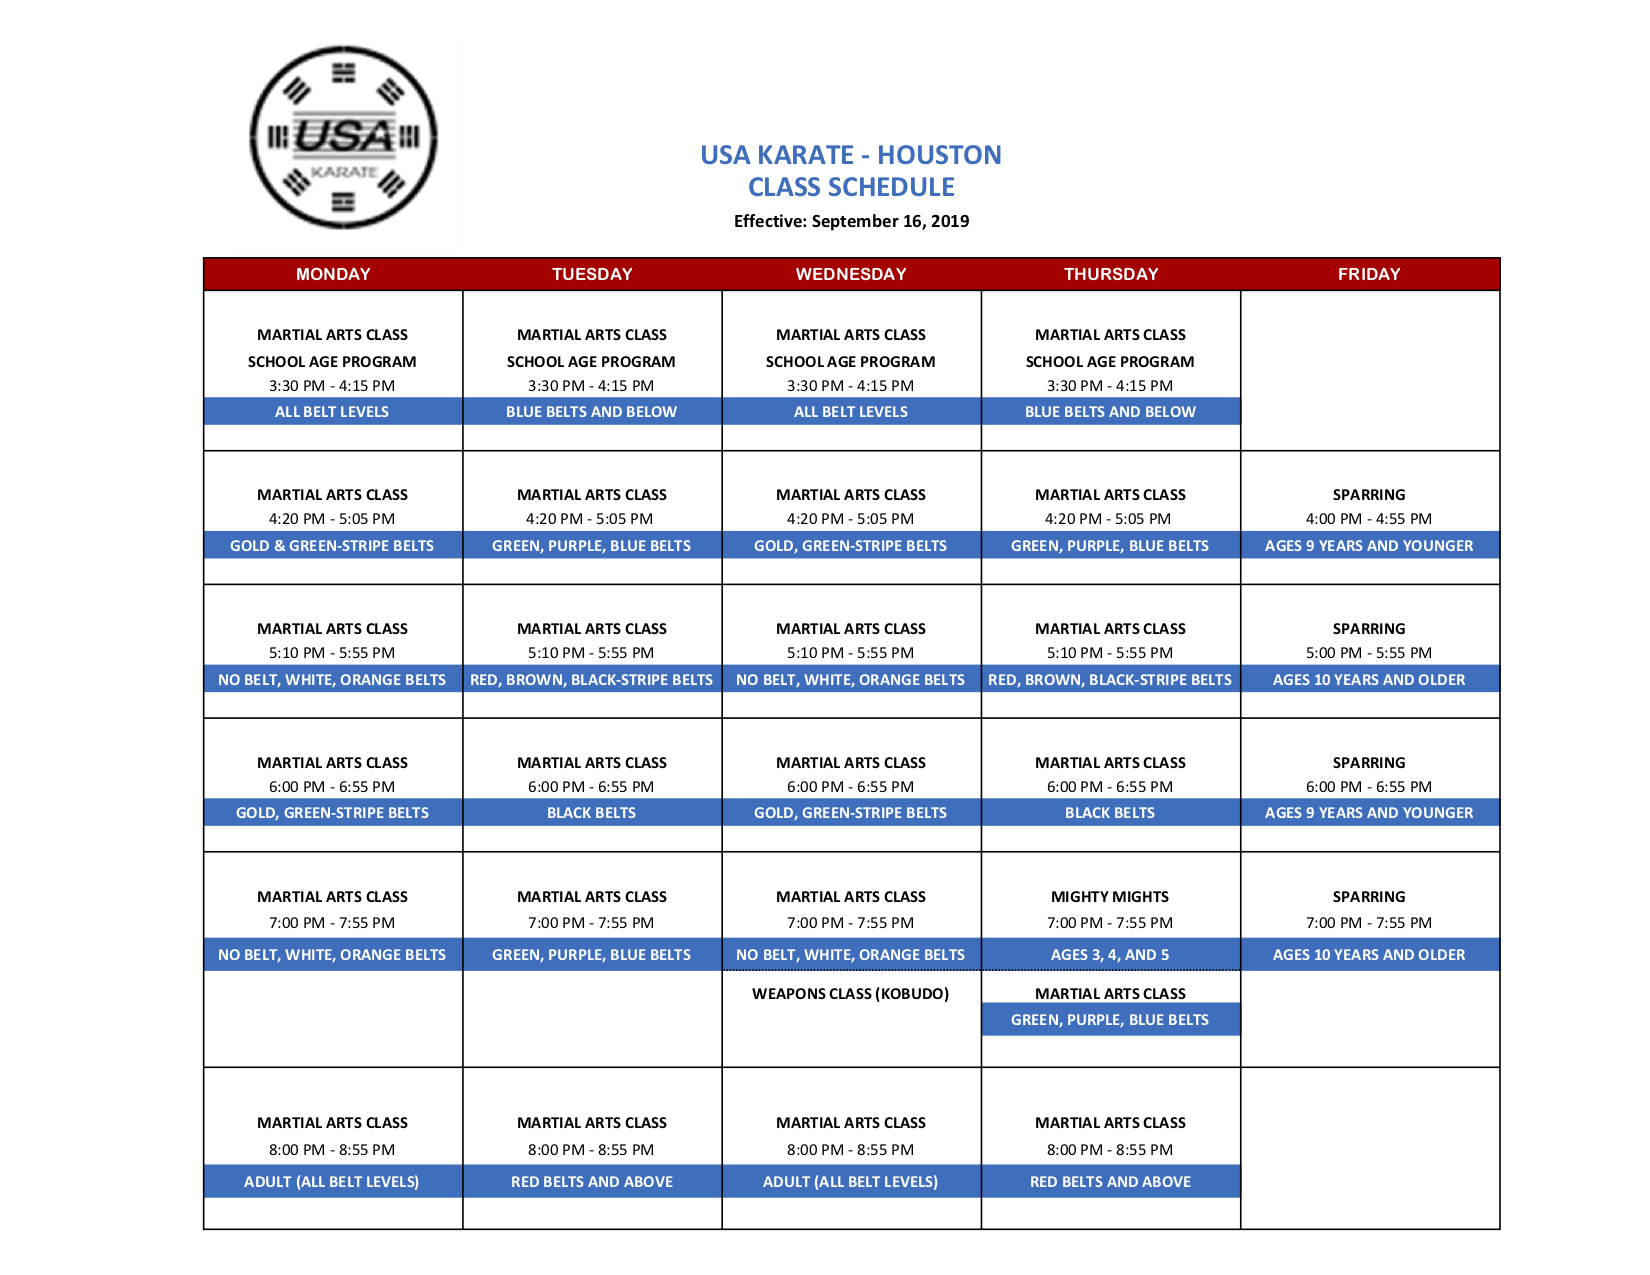 HOUSTON CLASS SCHEDULE (9-16-2019) - Sheet1